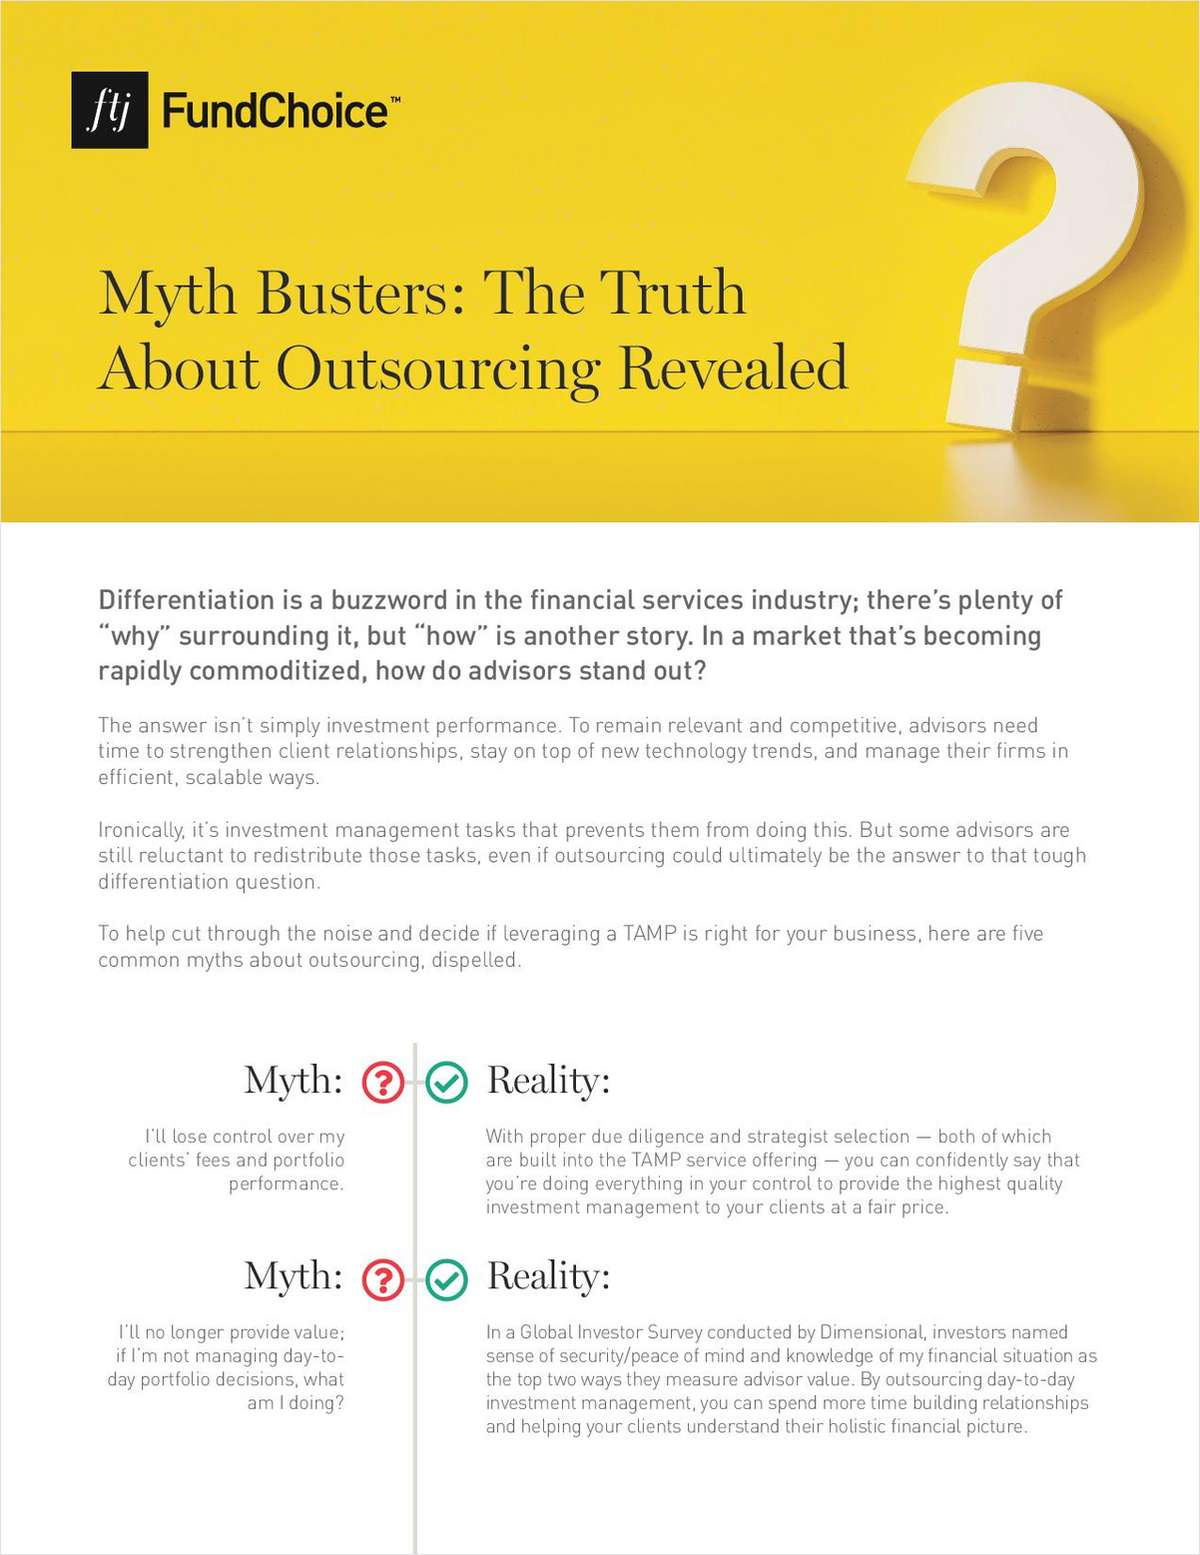 Myth Busters: The Truth About Outsourcing Revealed